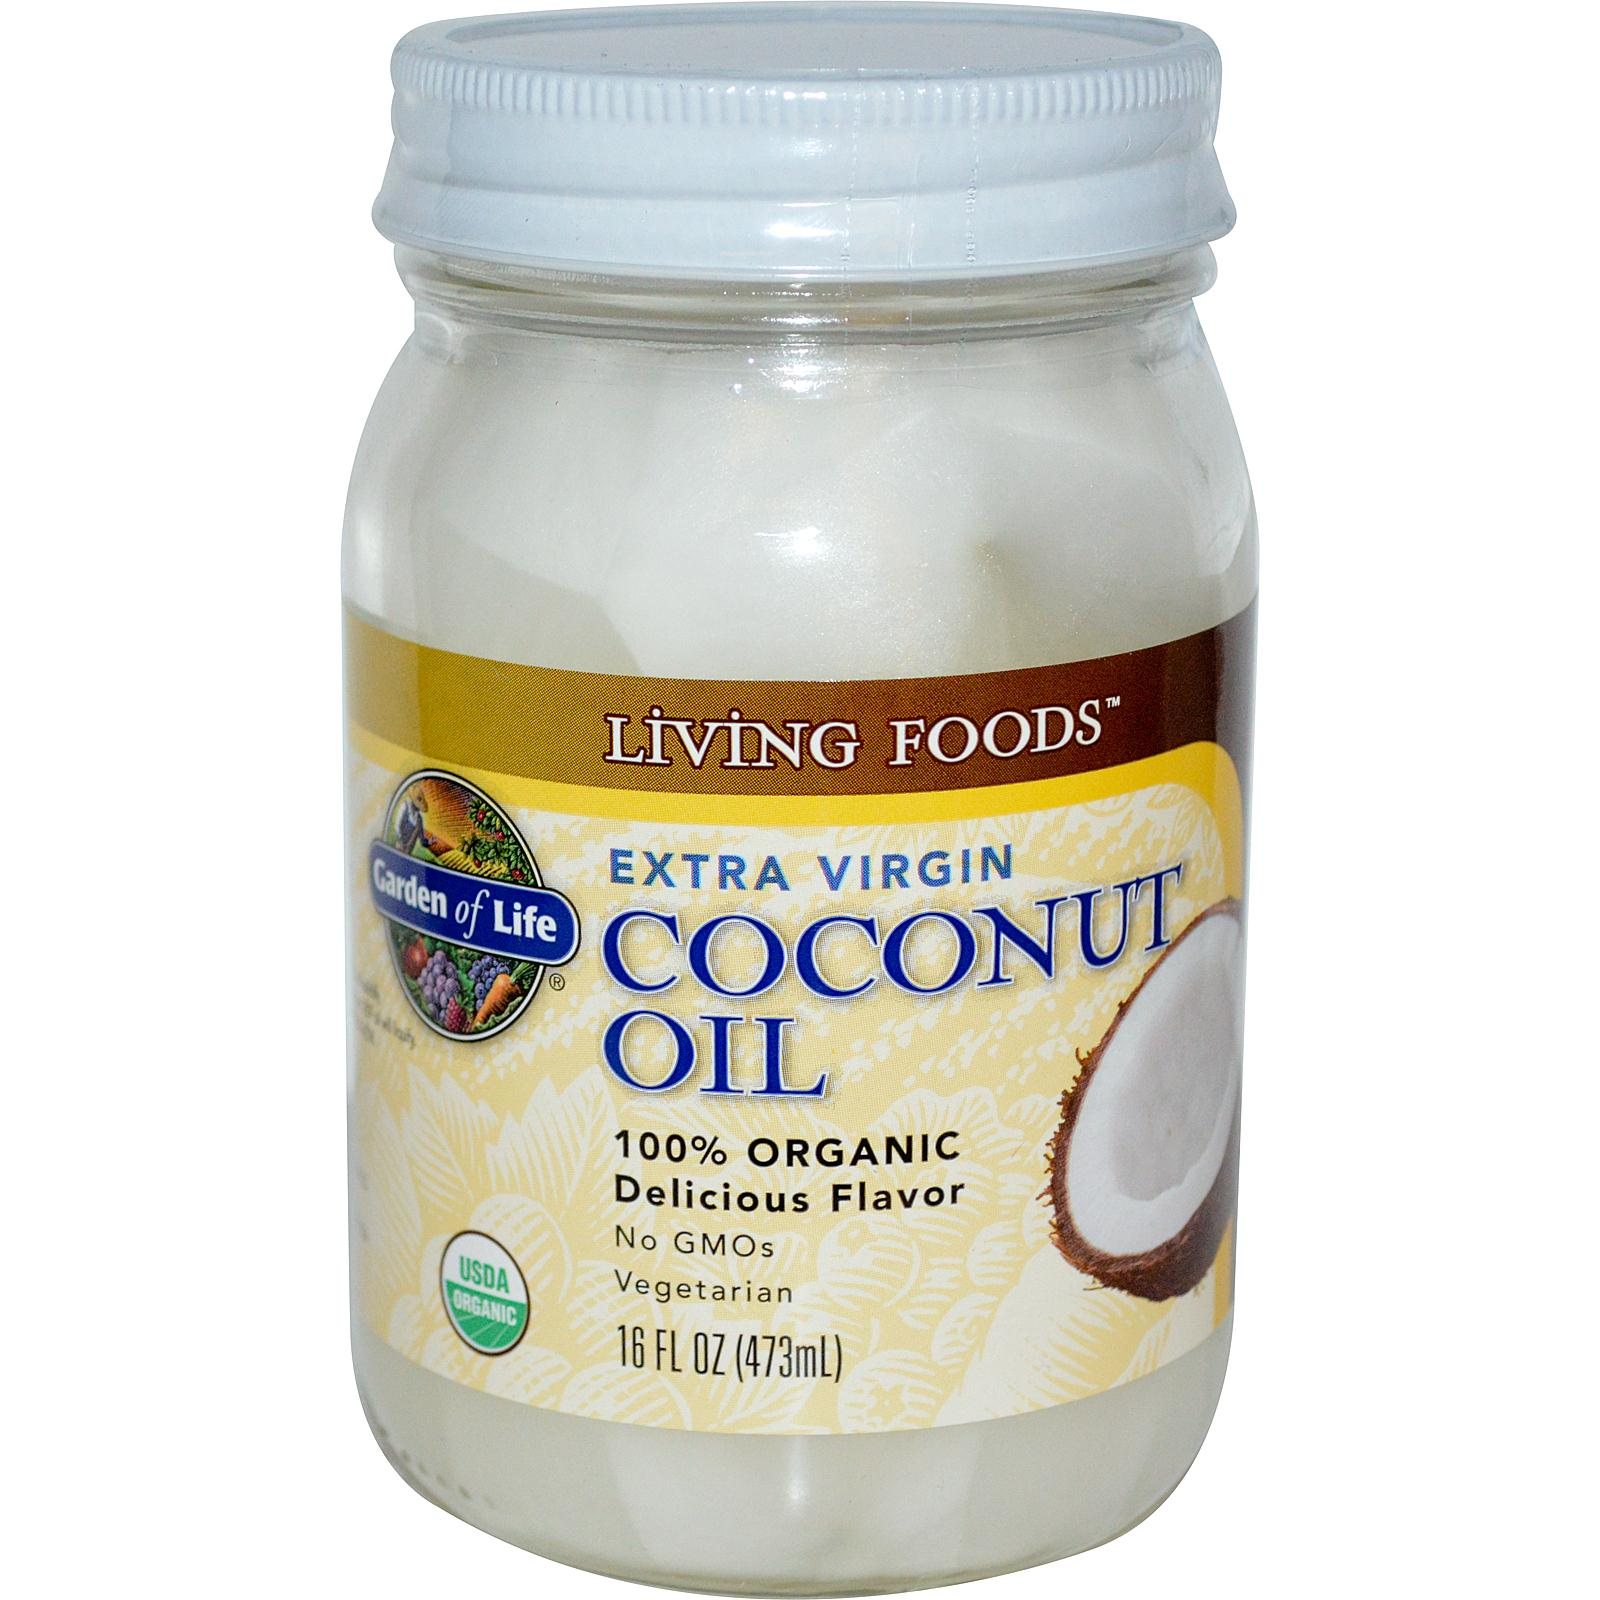 Coconut oil can be used as a sexual lubricant and also cures yeast infections.